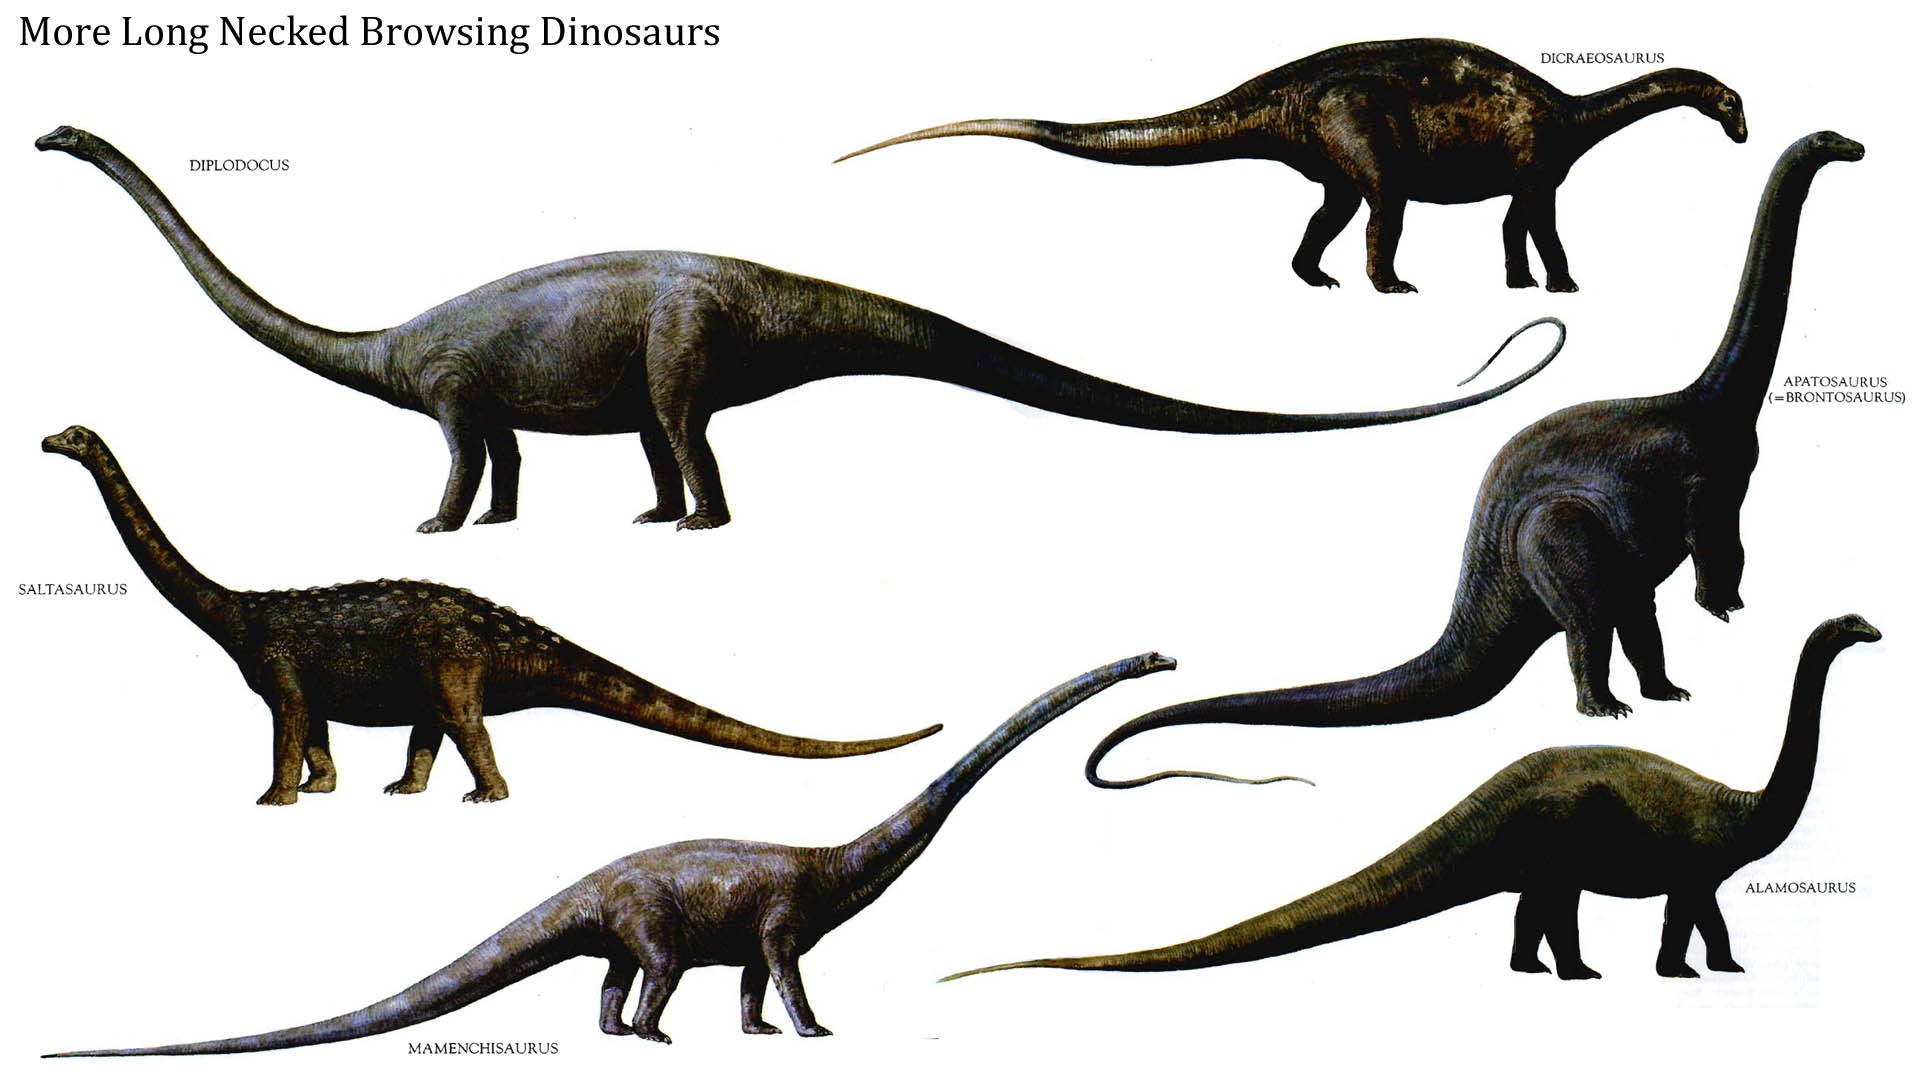 Long Necked Browsing Dinosaurs